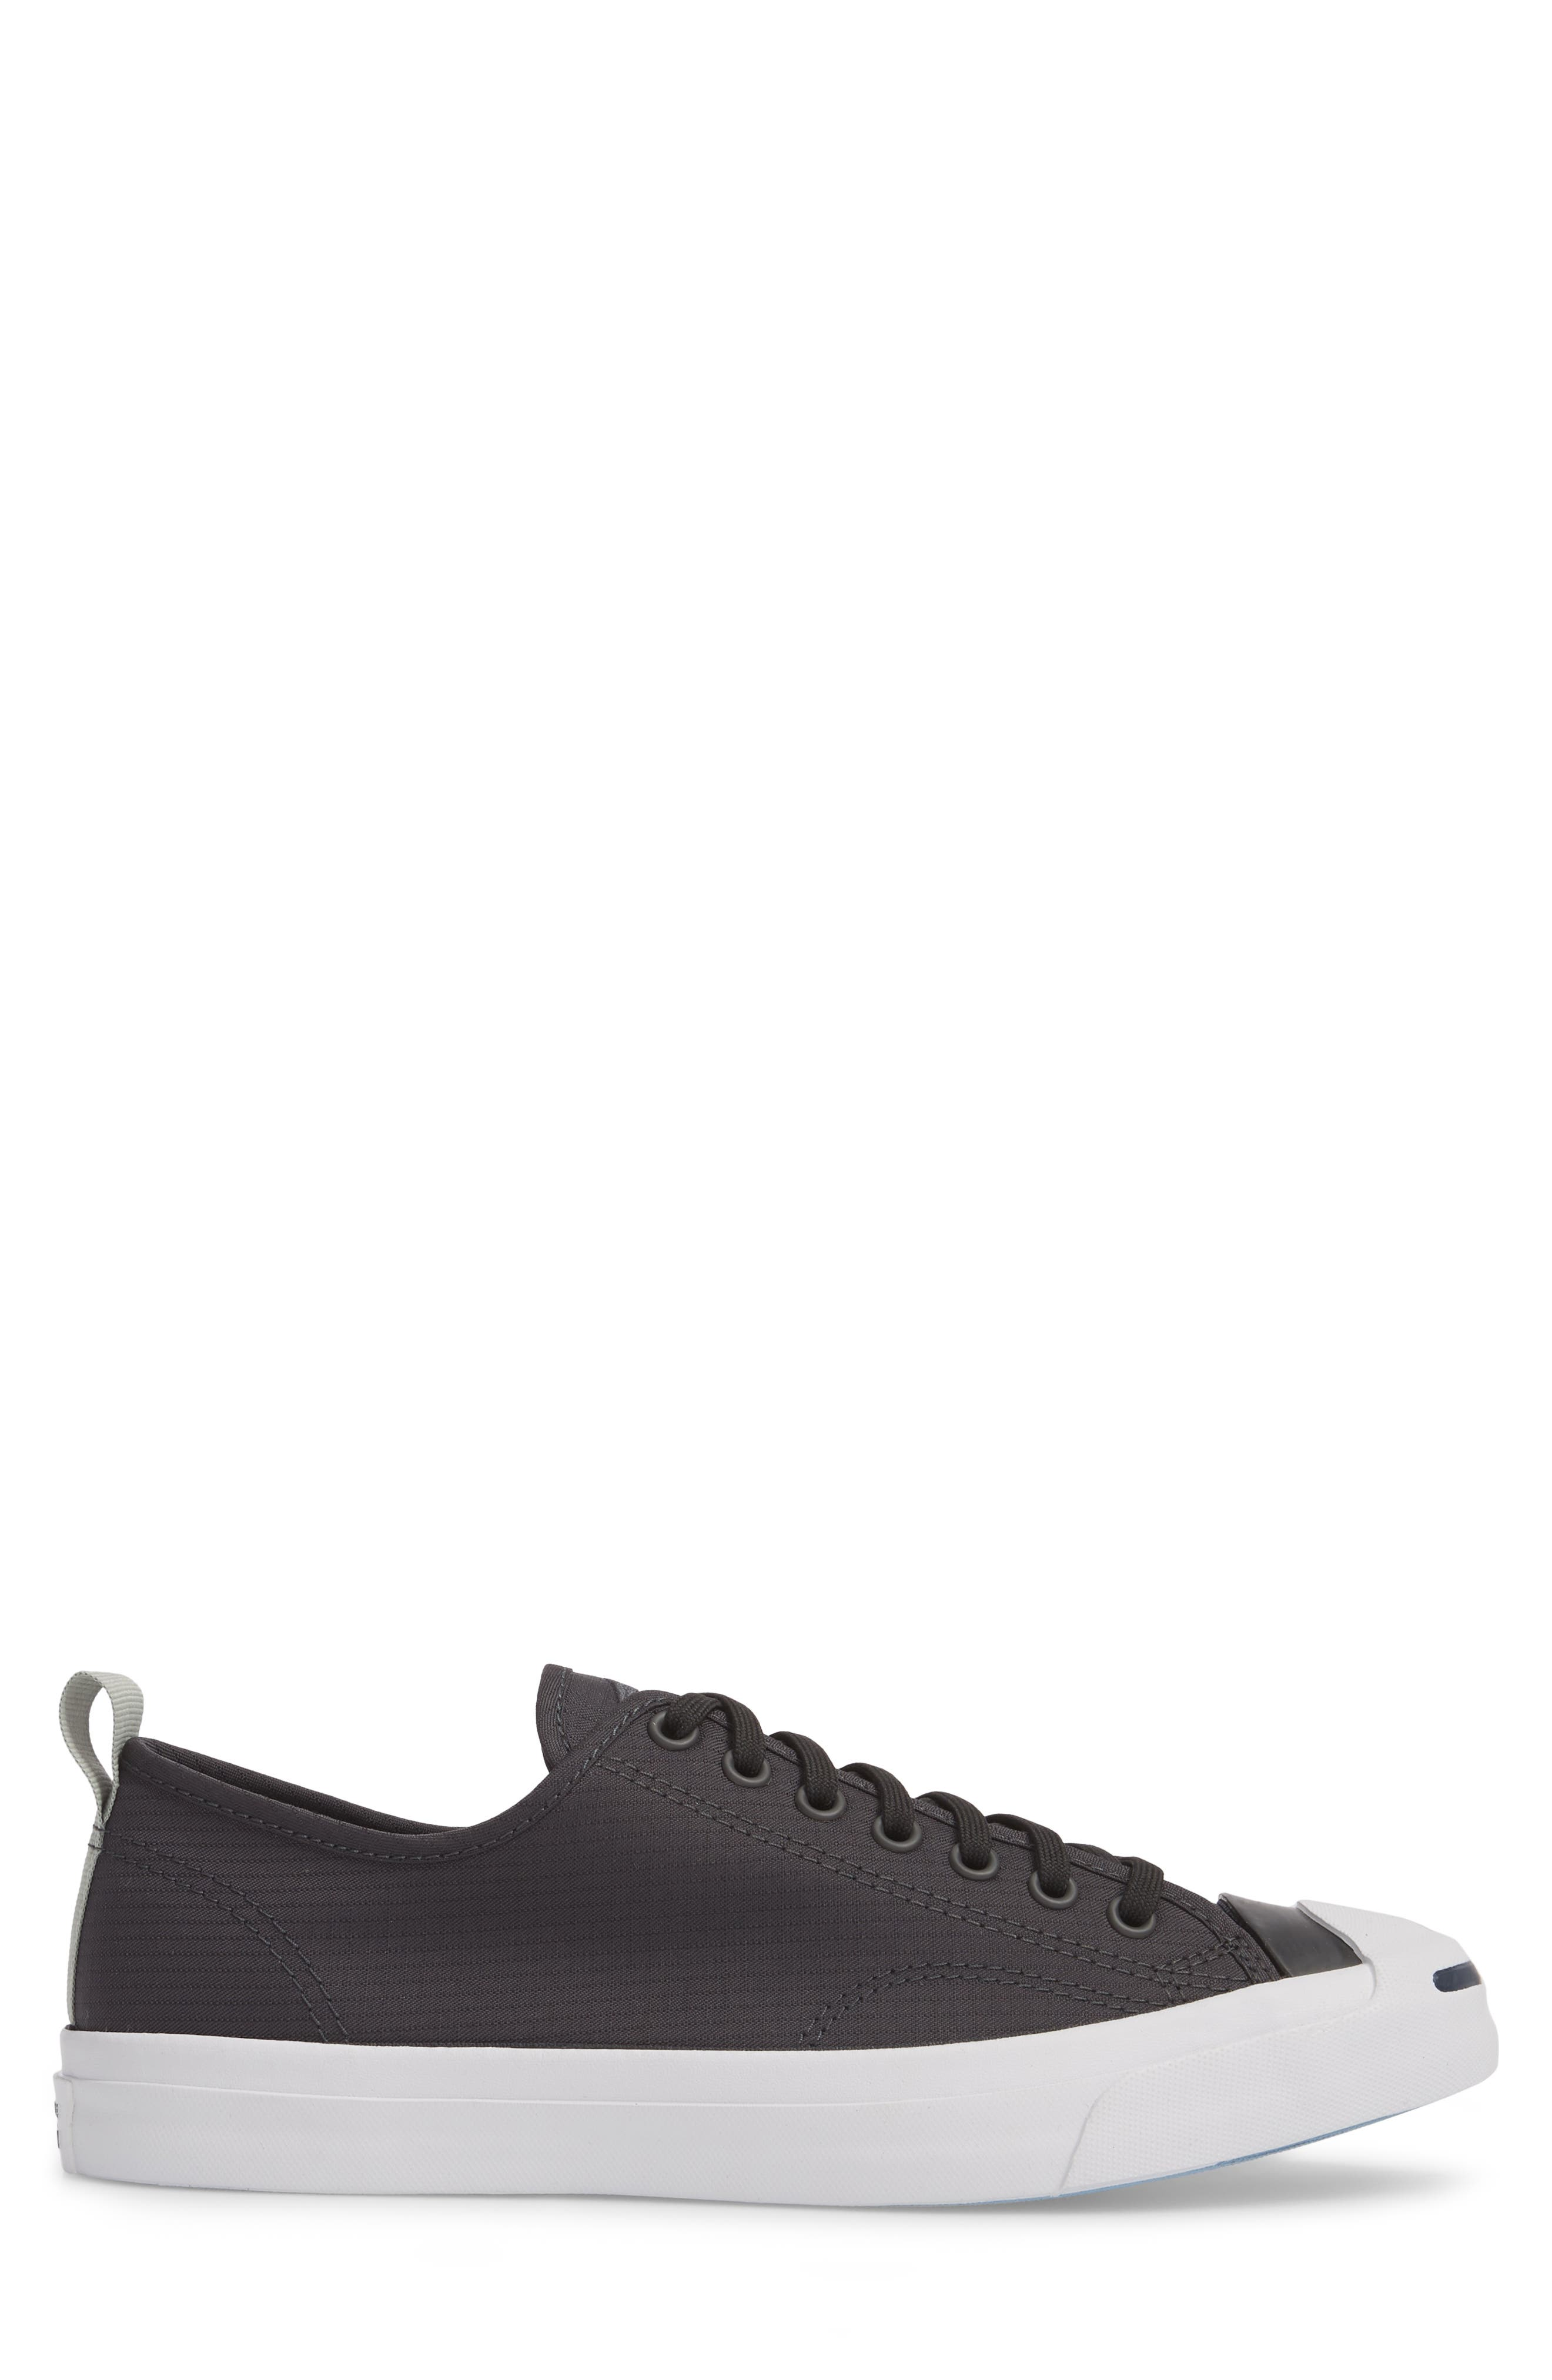 Jack Purcell Ripstop Sneaker,                             Alternate thumbnail 5, color,